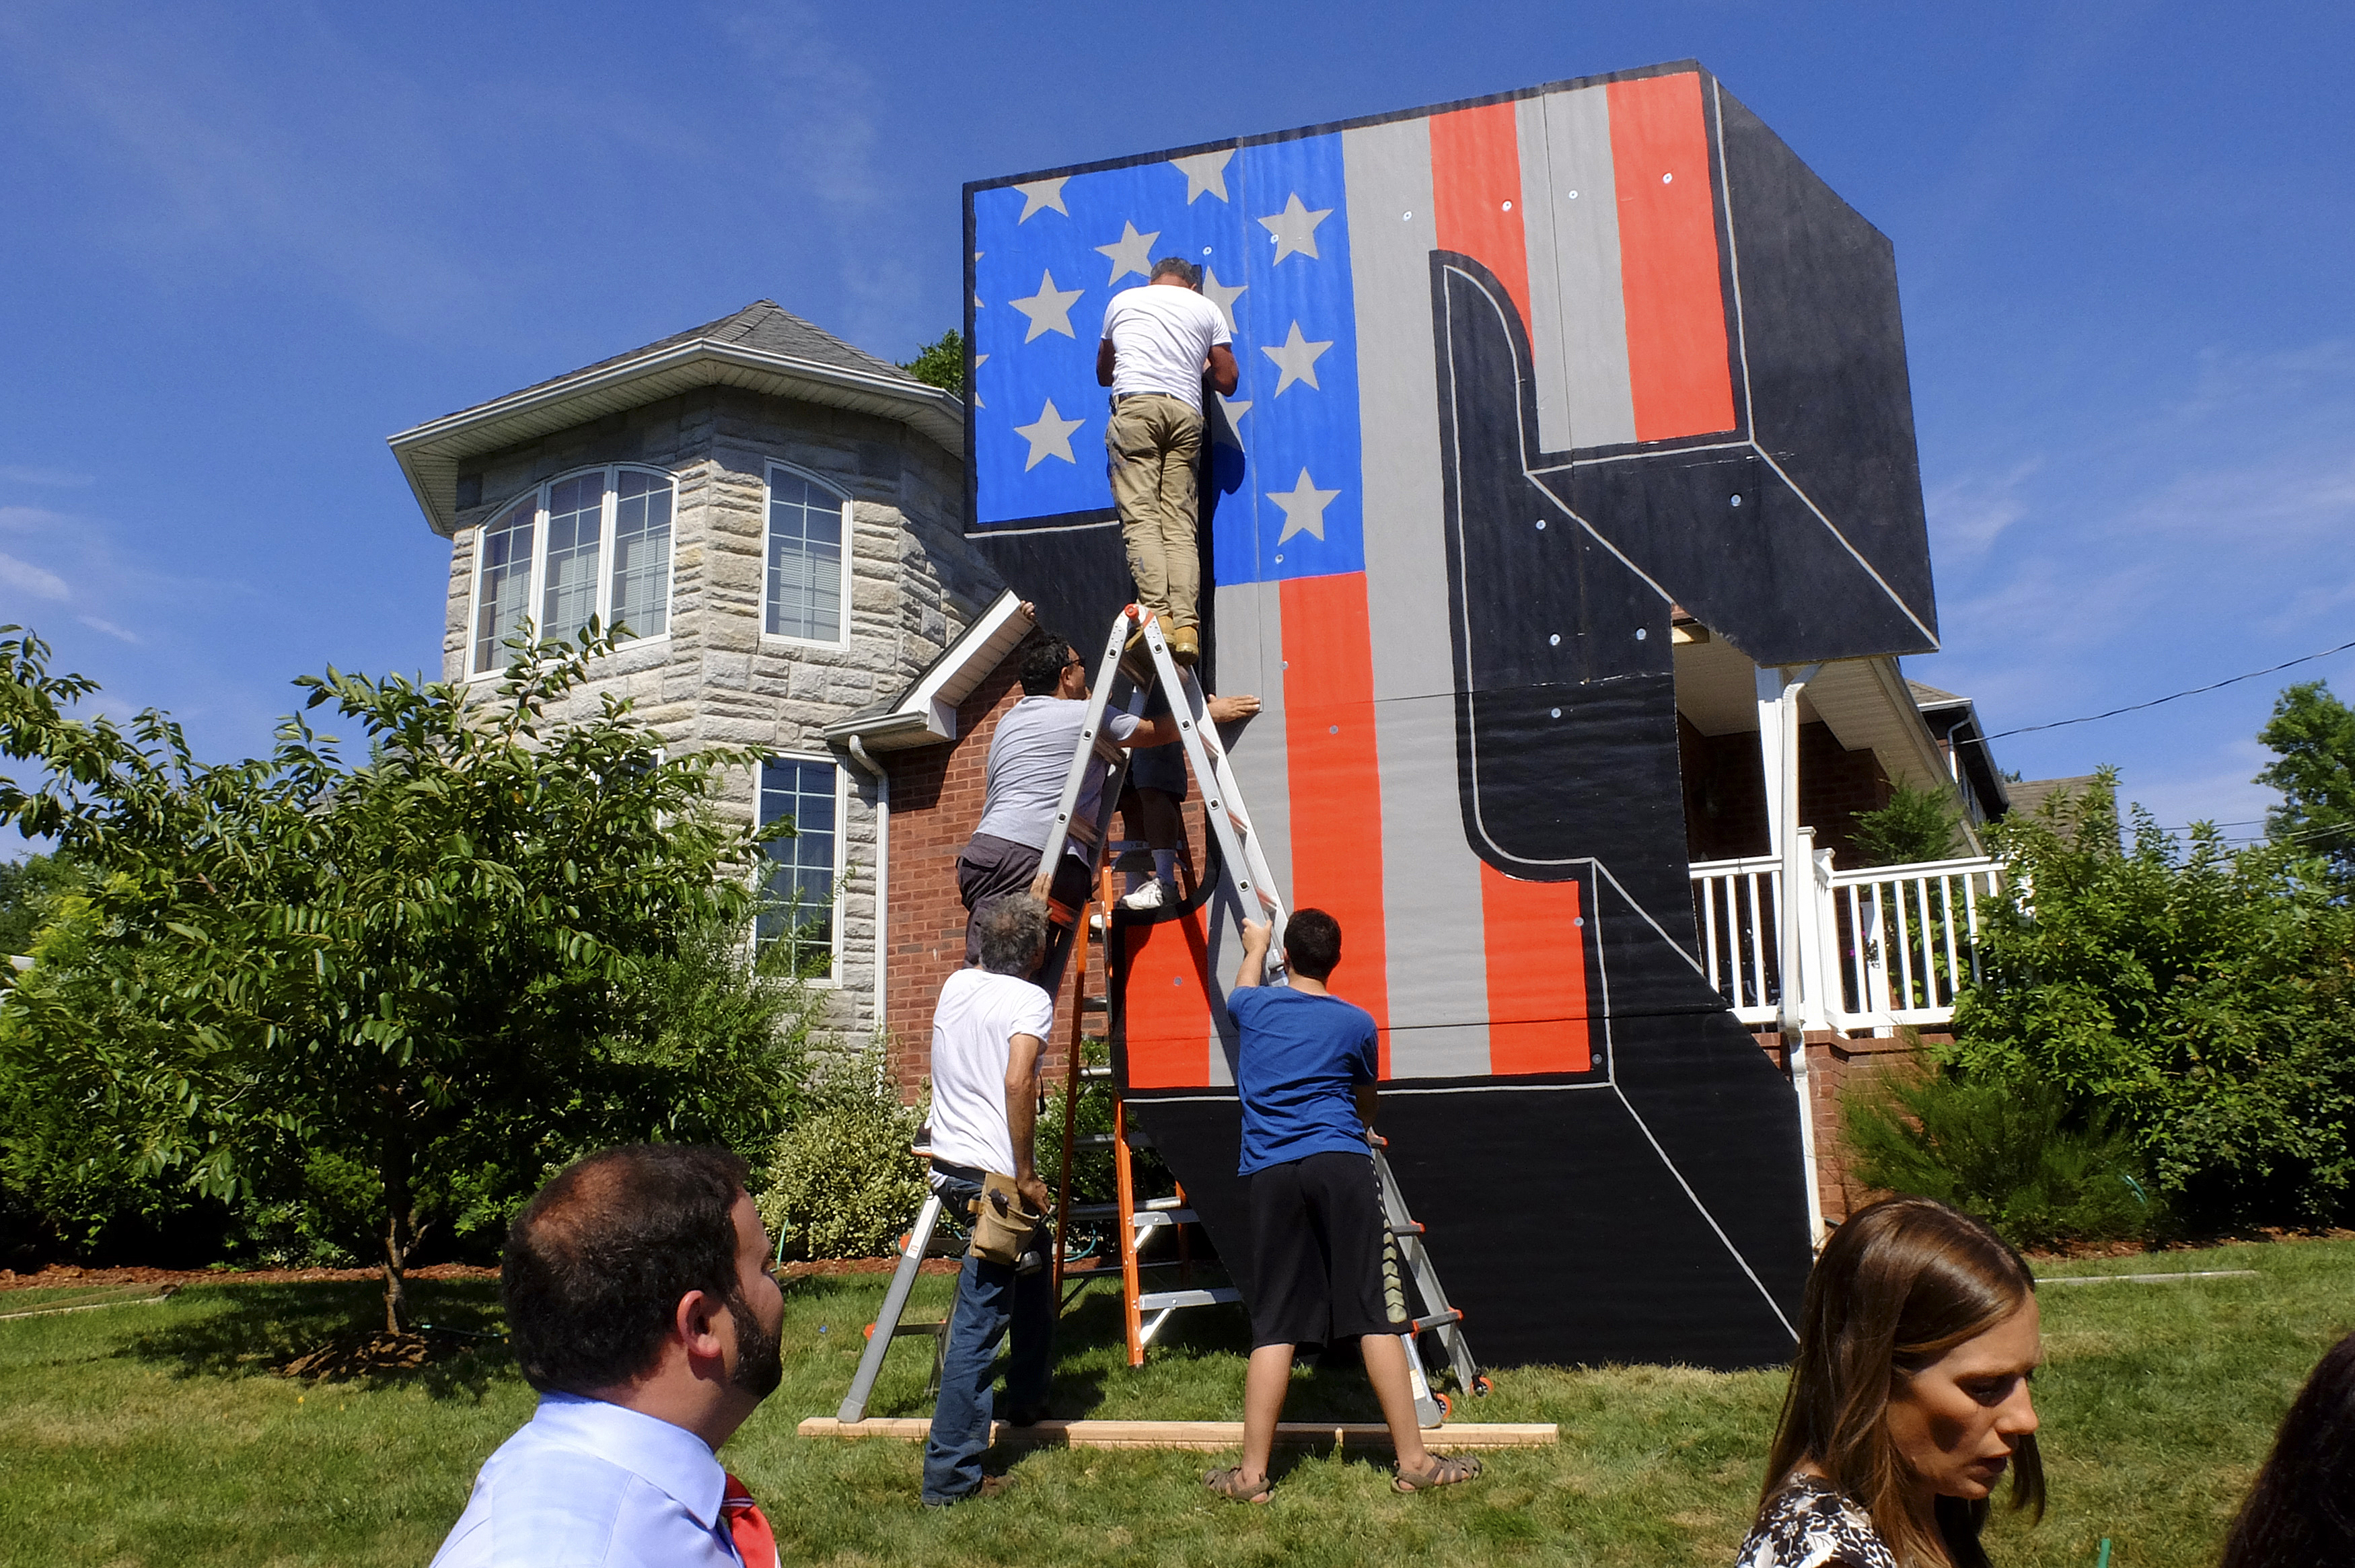 New York artist Scott LoBaido works on a 'Patriotic Lawn T' in support of Republican presidential nominee Donald Trump in the area of Castleton Corners on Staten Island, New York on Aug. 9, 2016.